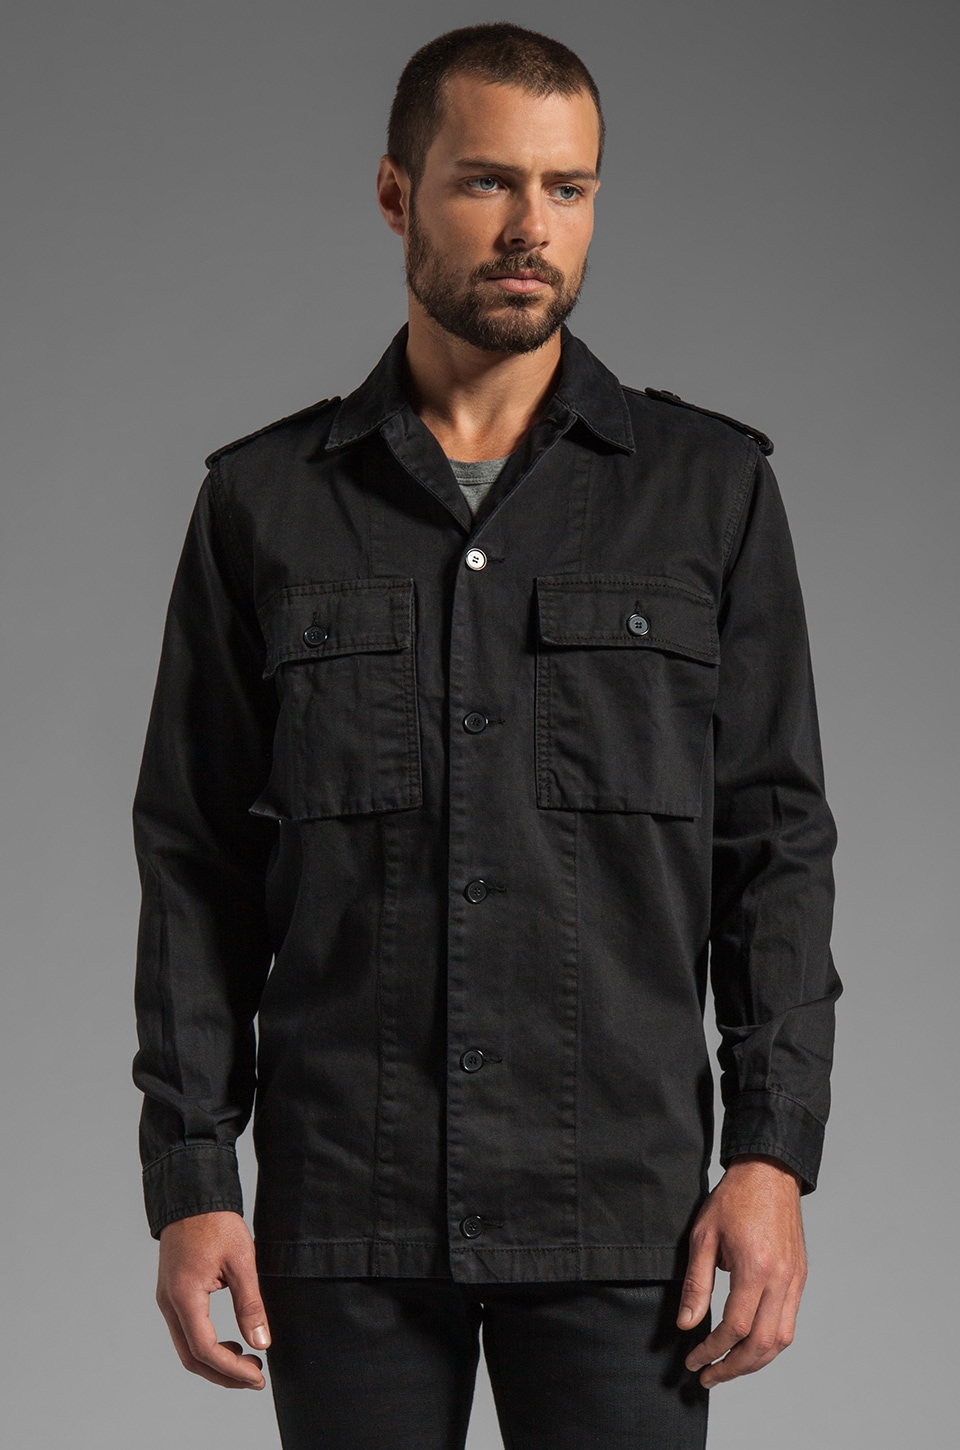 Kai-aakmann Military Shirt in Black